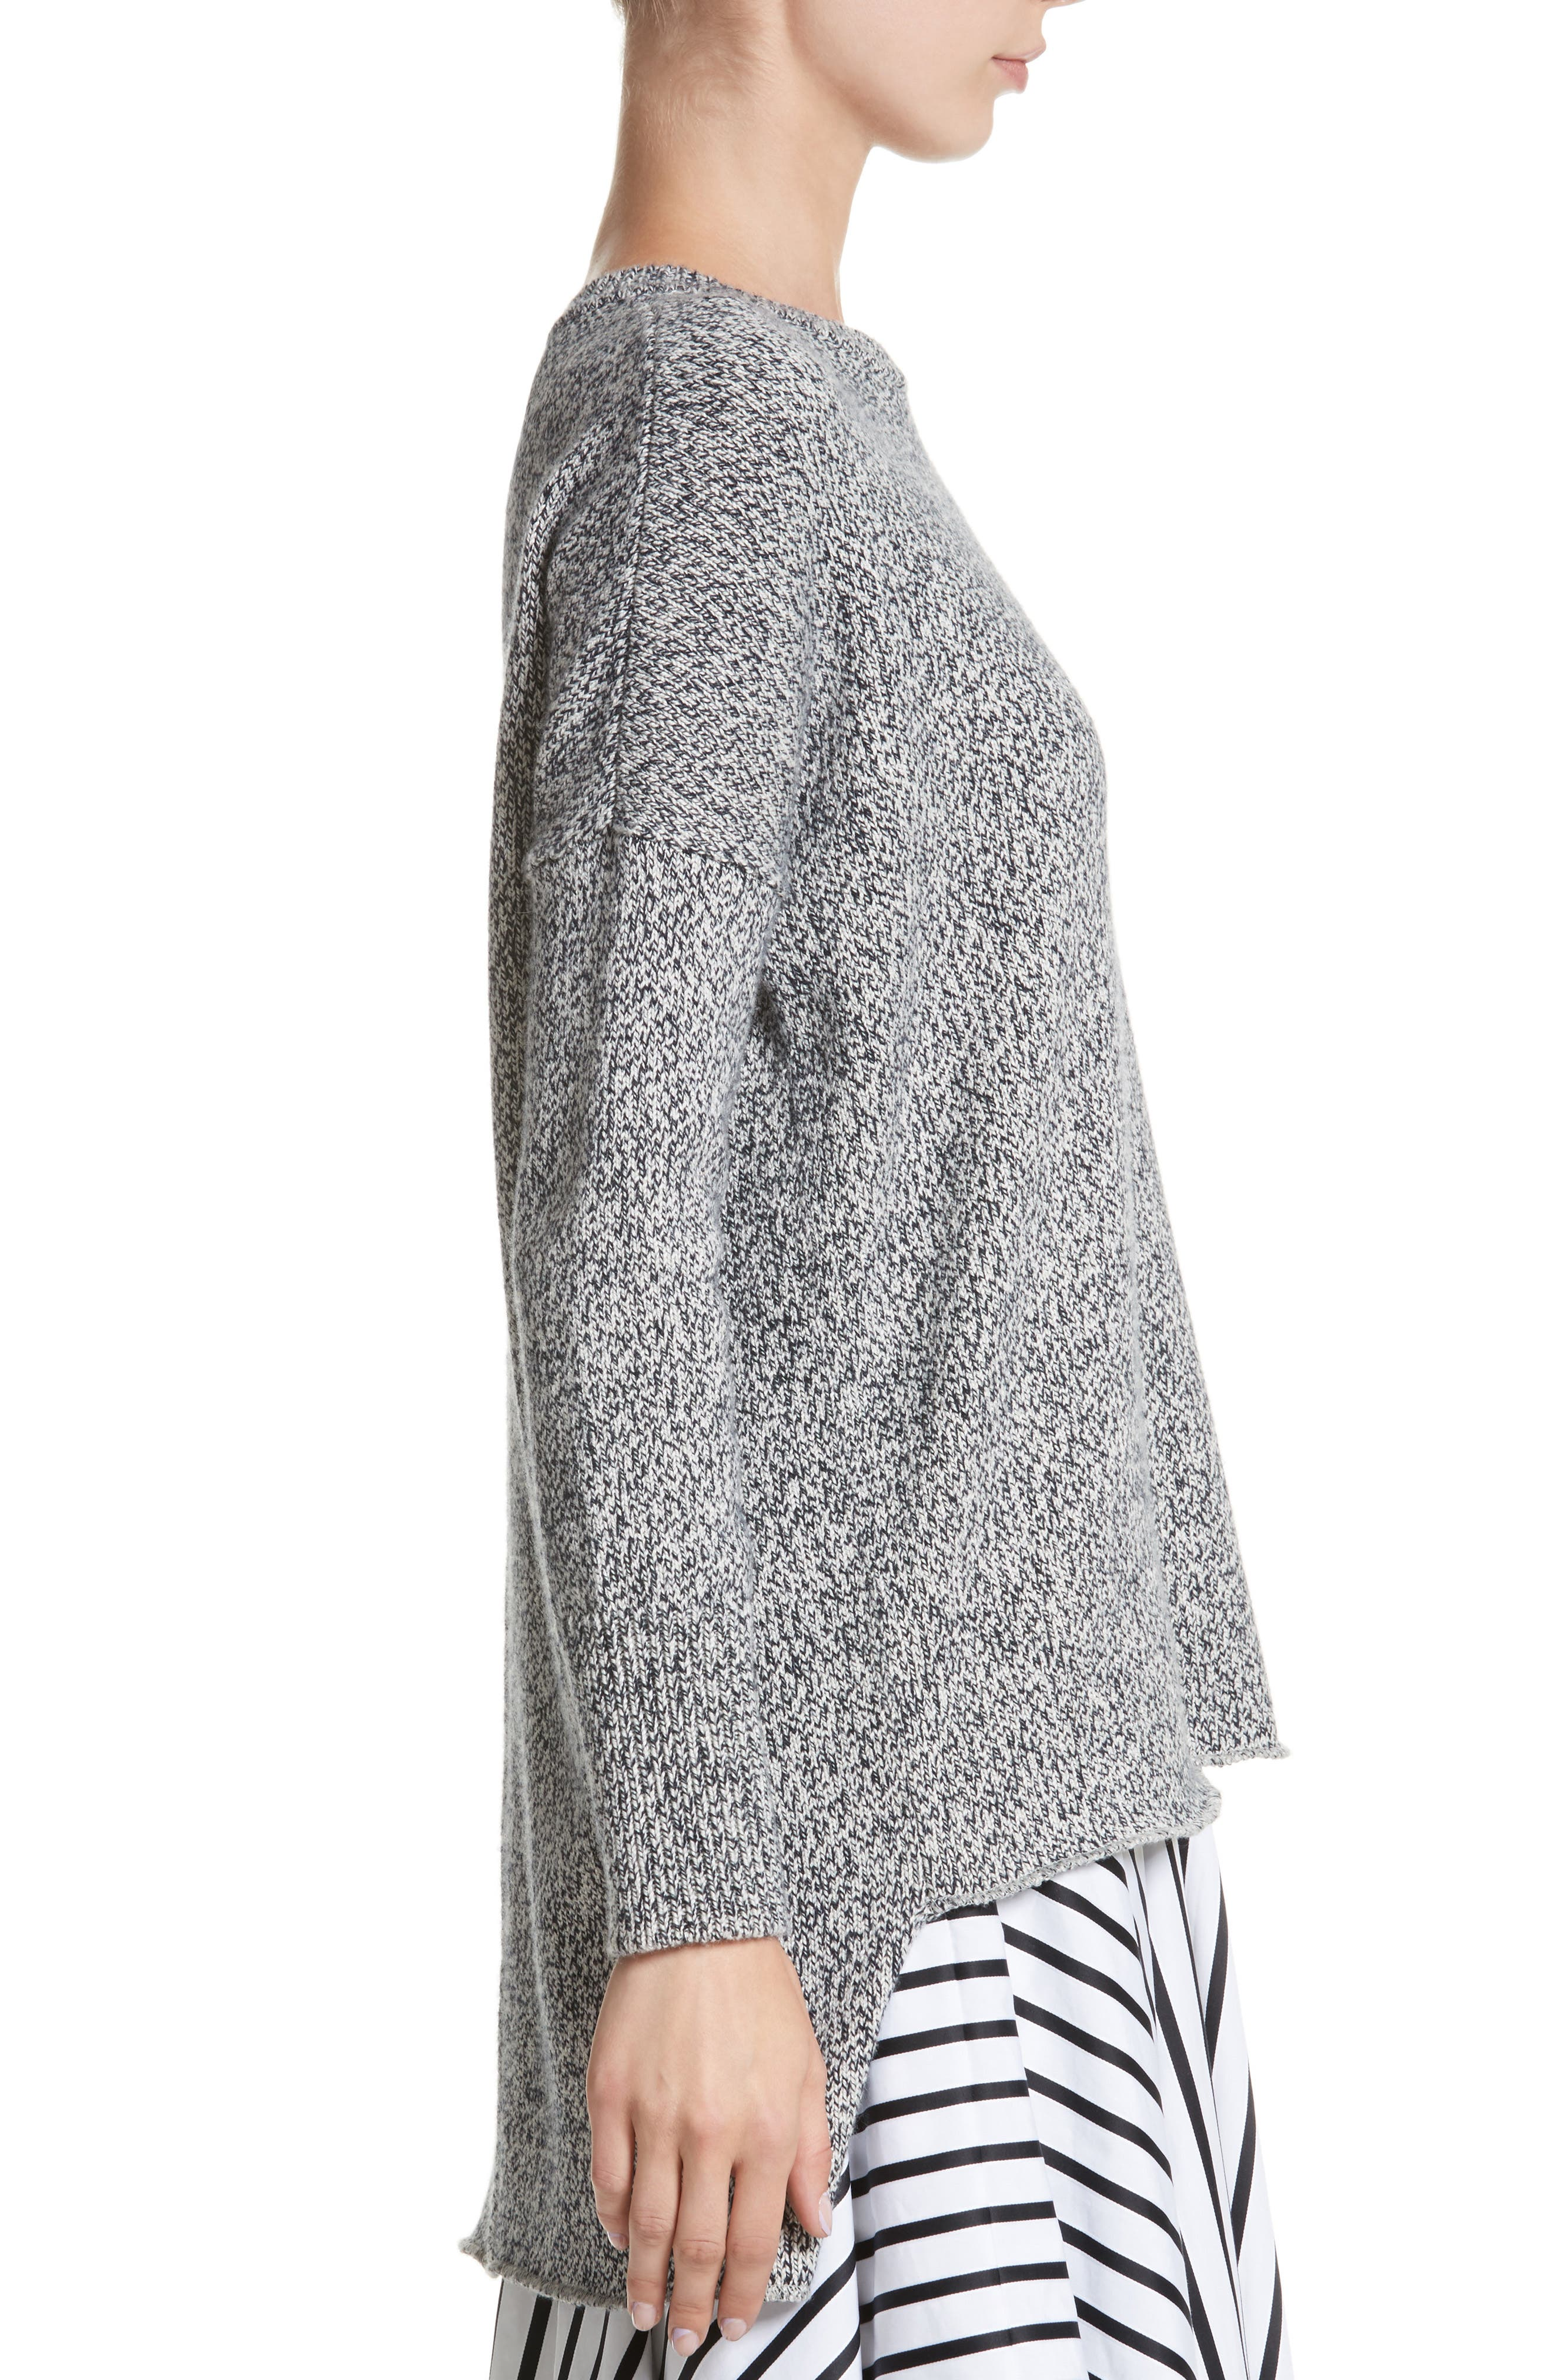 Marled Cotton, Cashmere & Silk Sweater,                             Alternate thumbnail 3, color,                             020